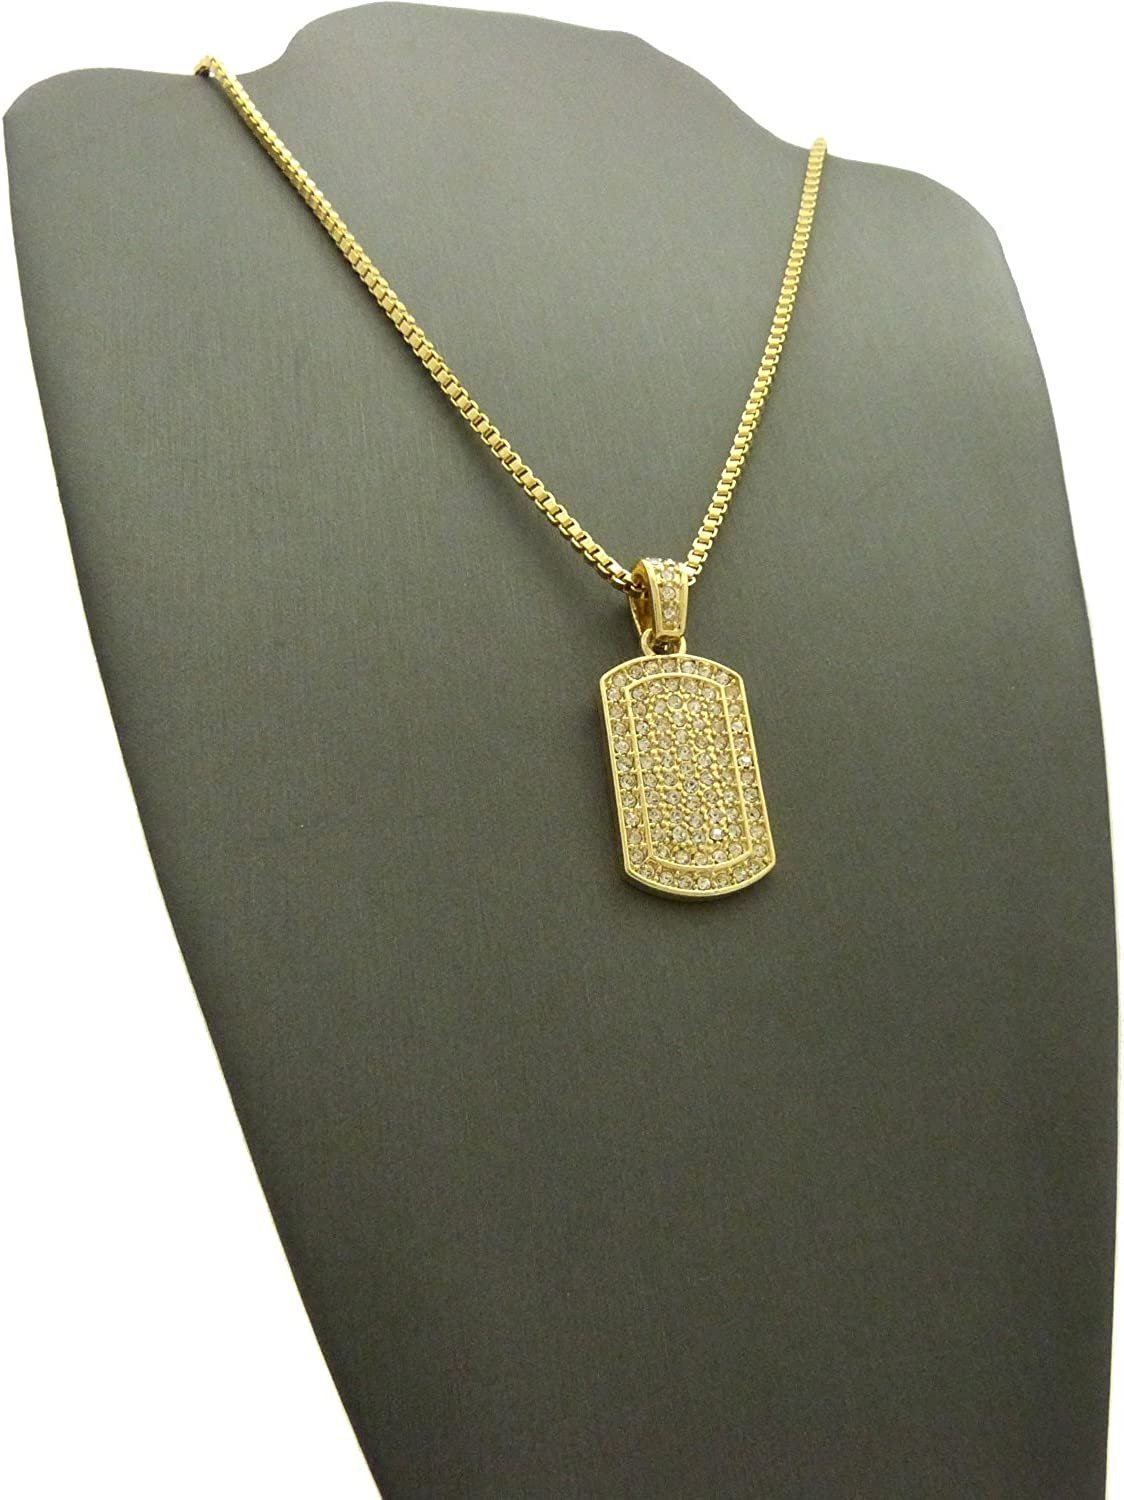 ICED OUT DOG TAG PENDANT /&2mm//24 BOX CHAIN HIP HOP NECKLACE XGP17BXG